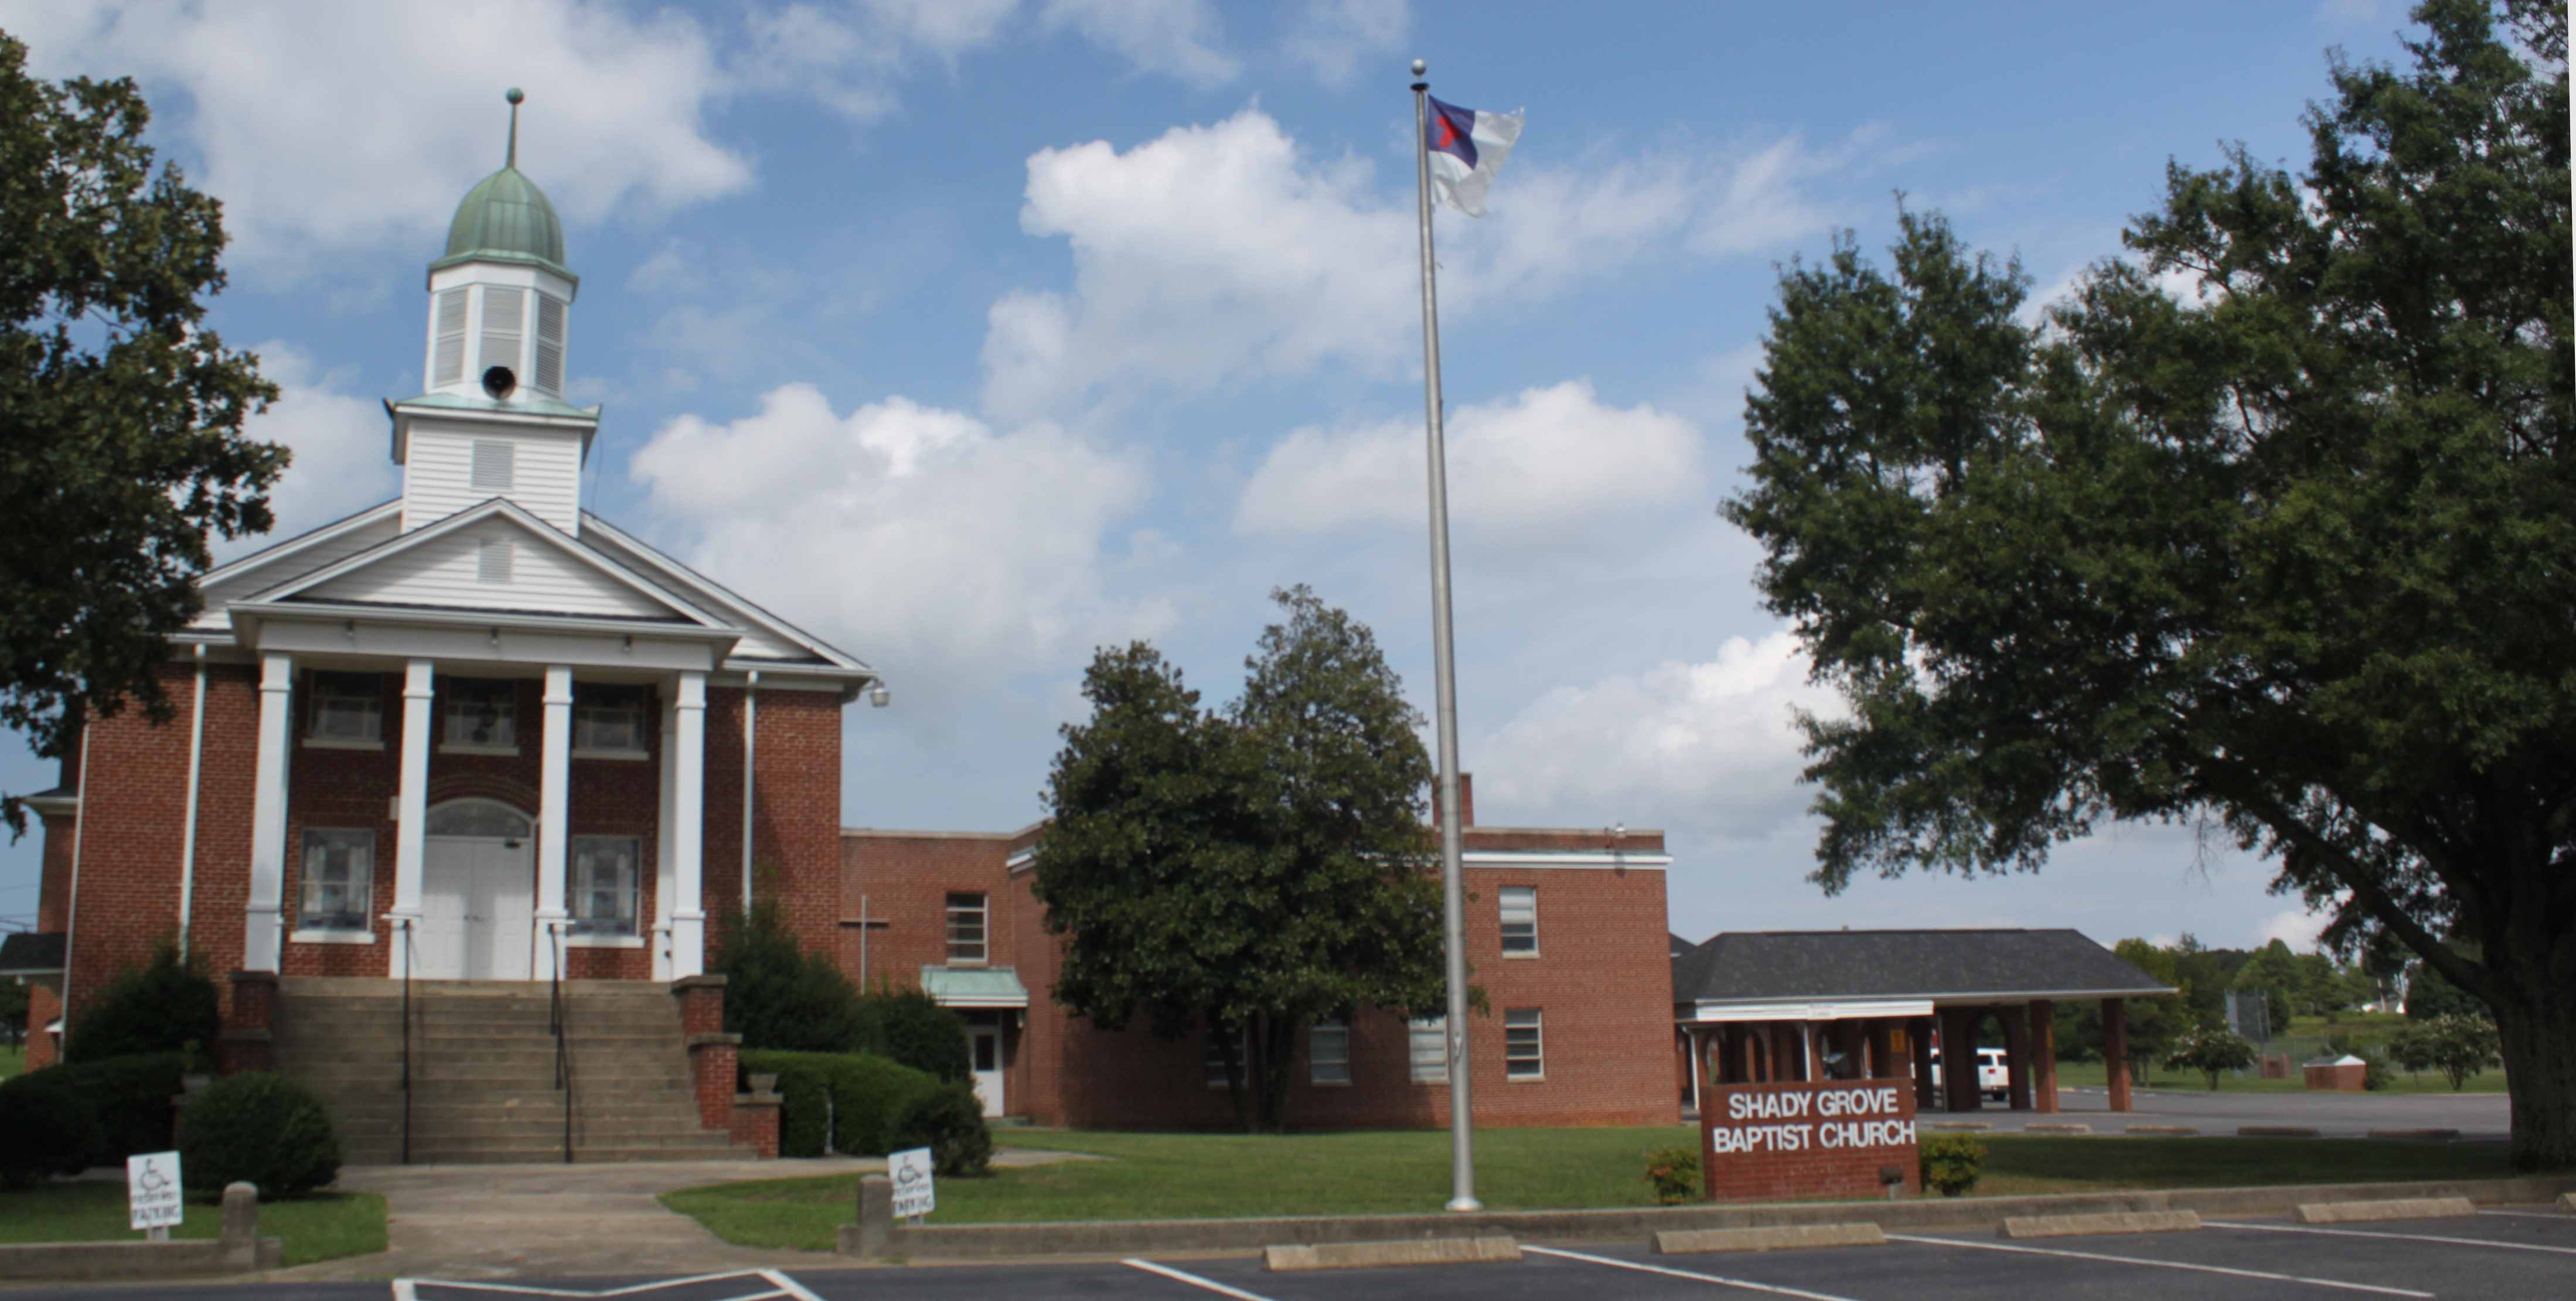 Church Offices and Worship Center, 3240 Tryon Courthouse Road, Cherryville, North Carolina, 28021, USA